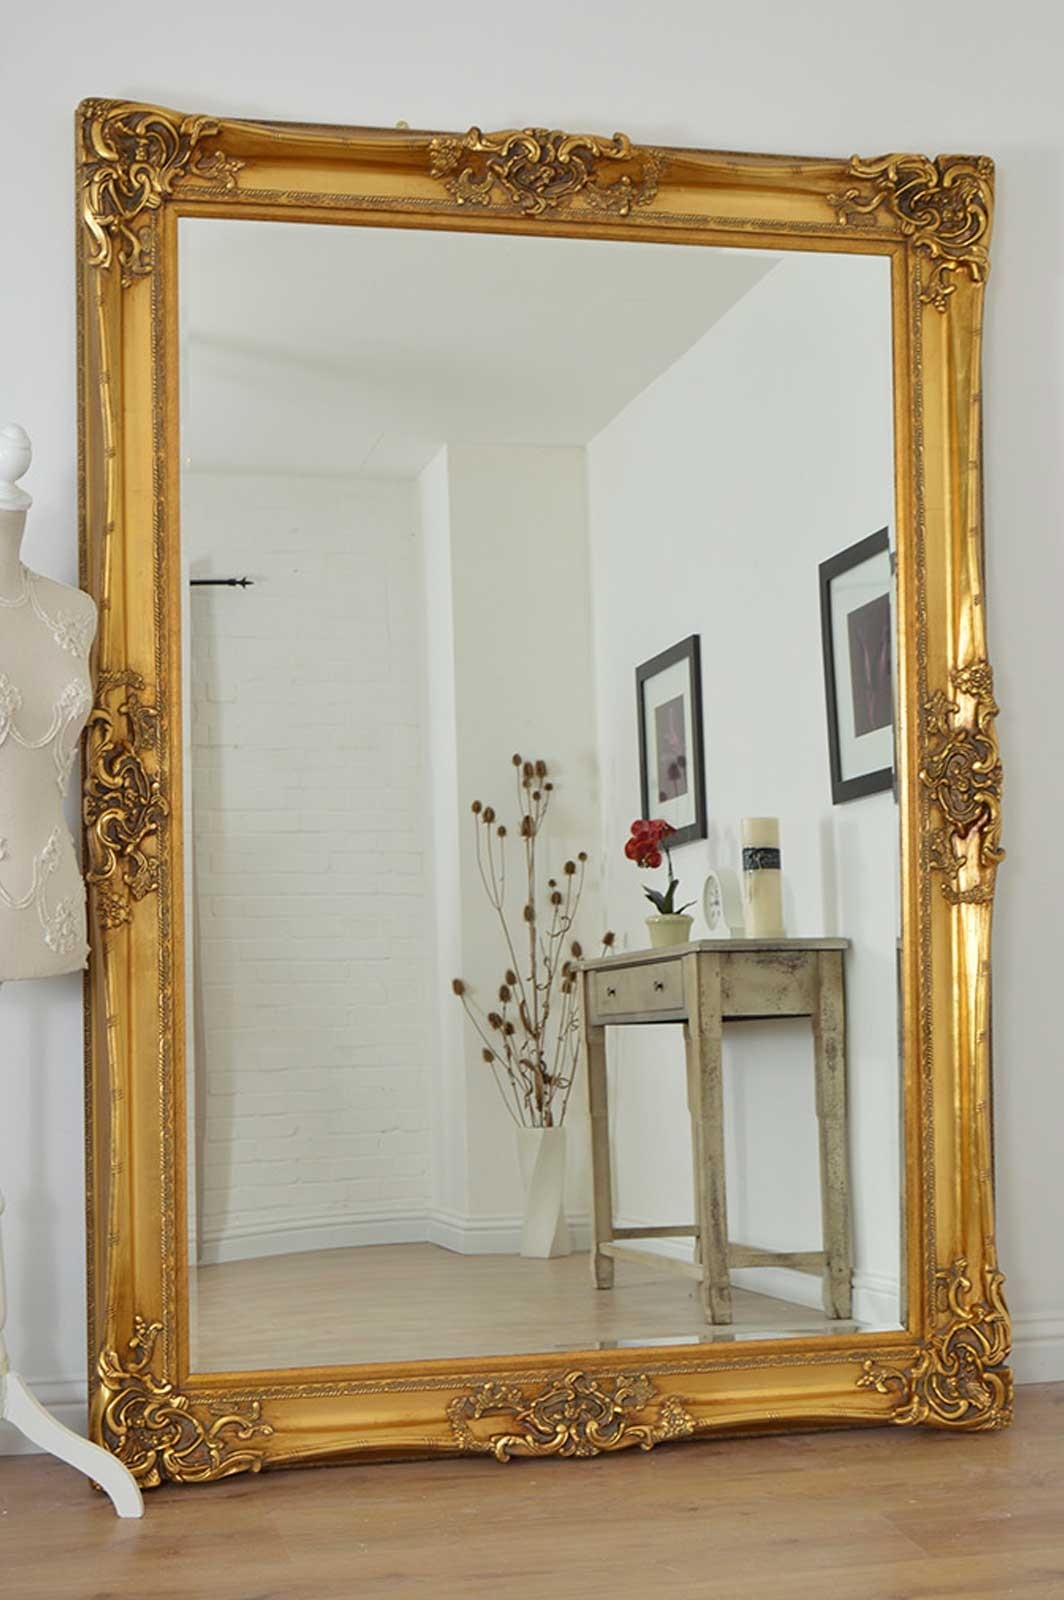 Large Gold Very Ornate Antique Design Wall Mirror 7ft X 5ft 213cm Regarding Giant Antique Mirror (Image 10 of 15)